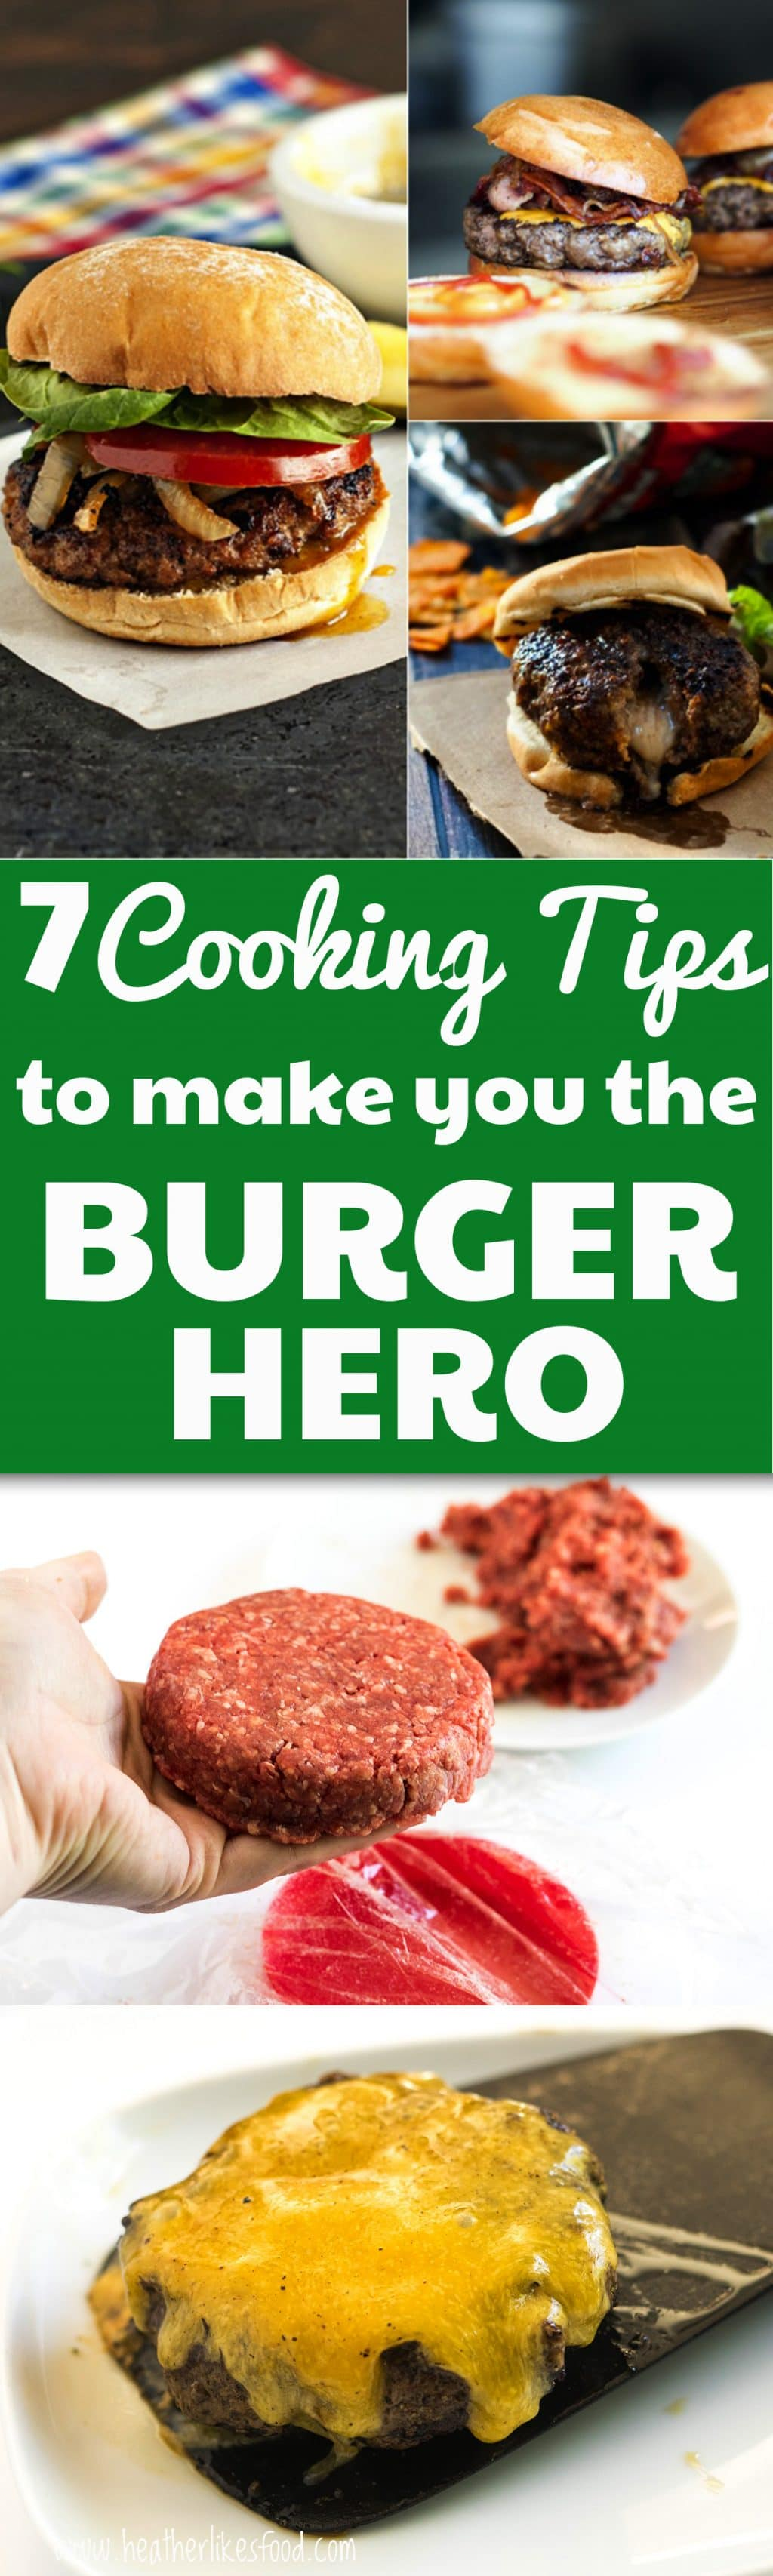 7 Cooking tips for perfect burgers